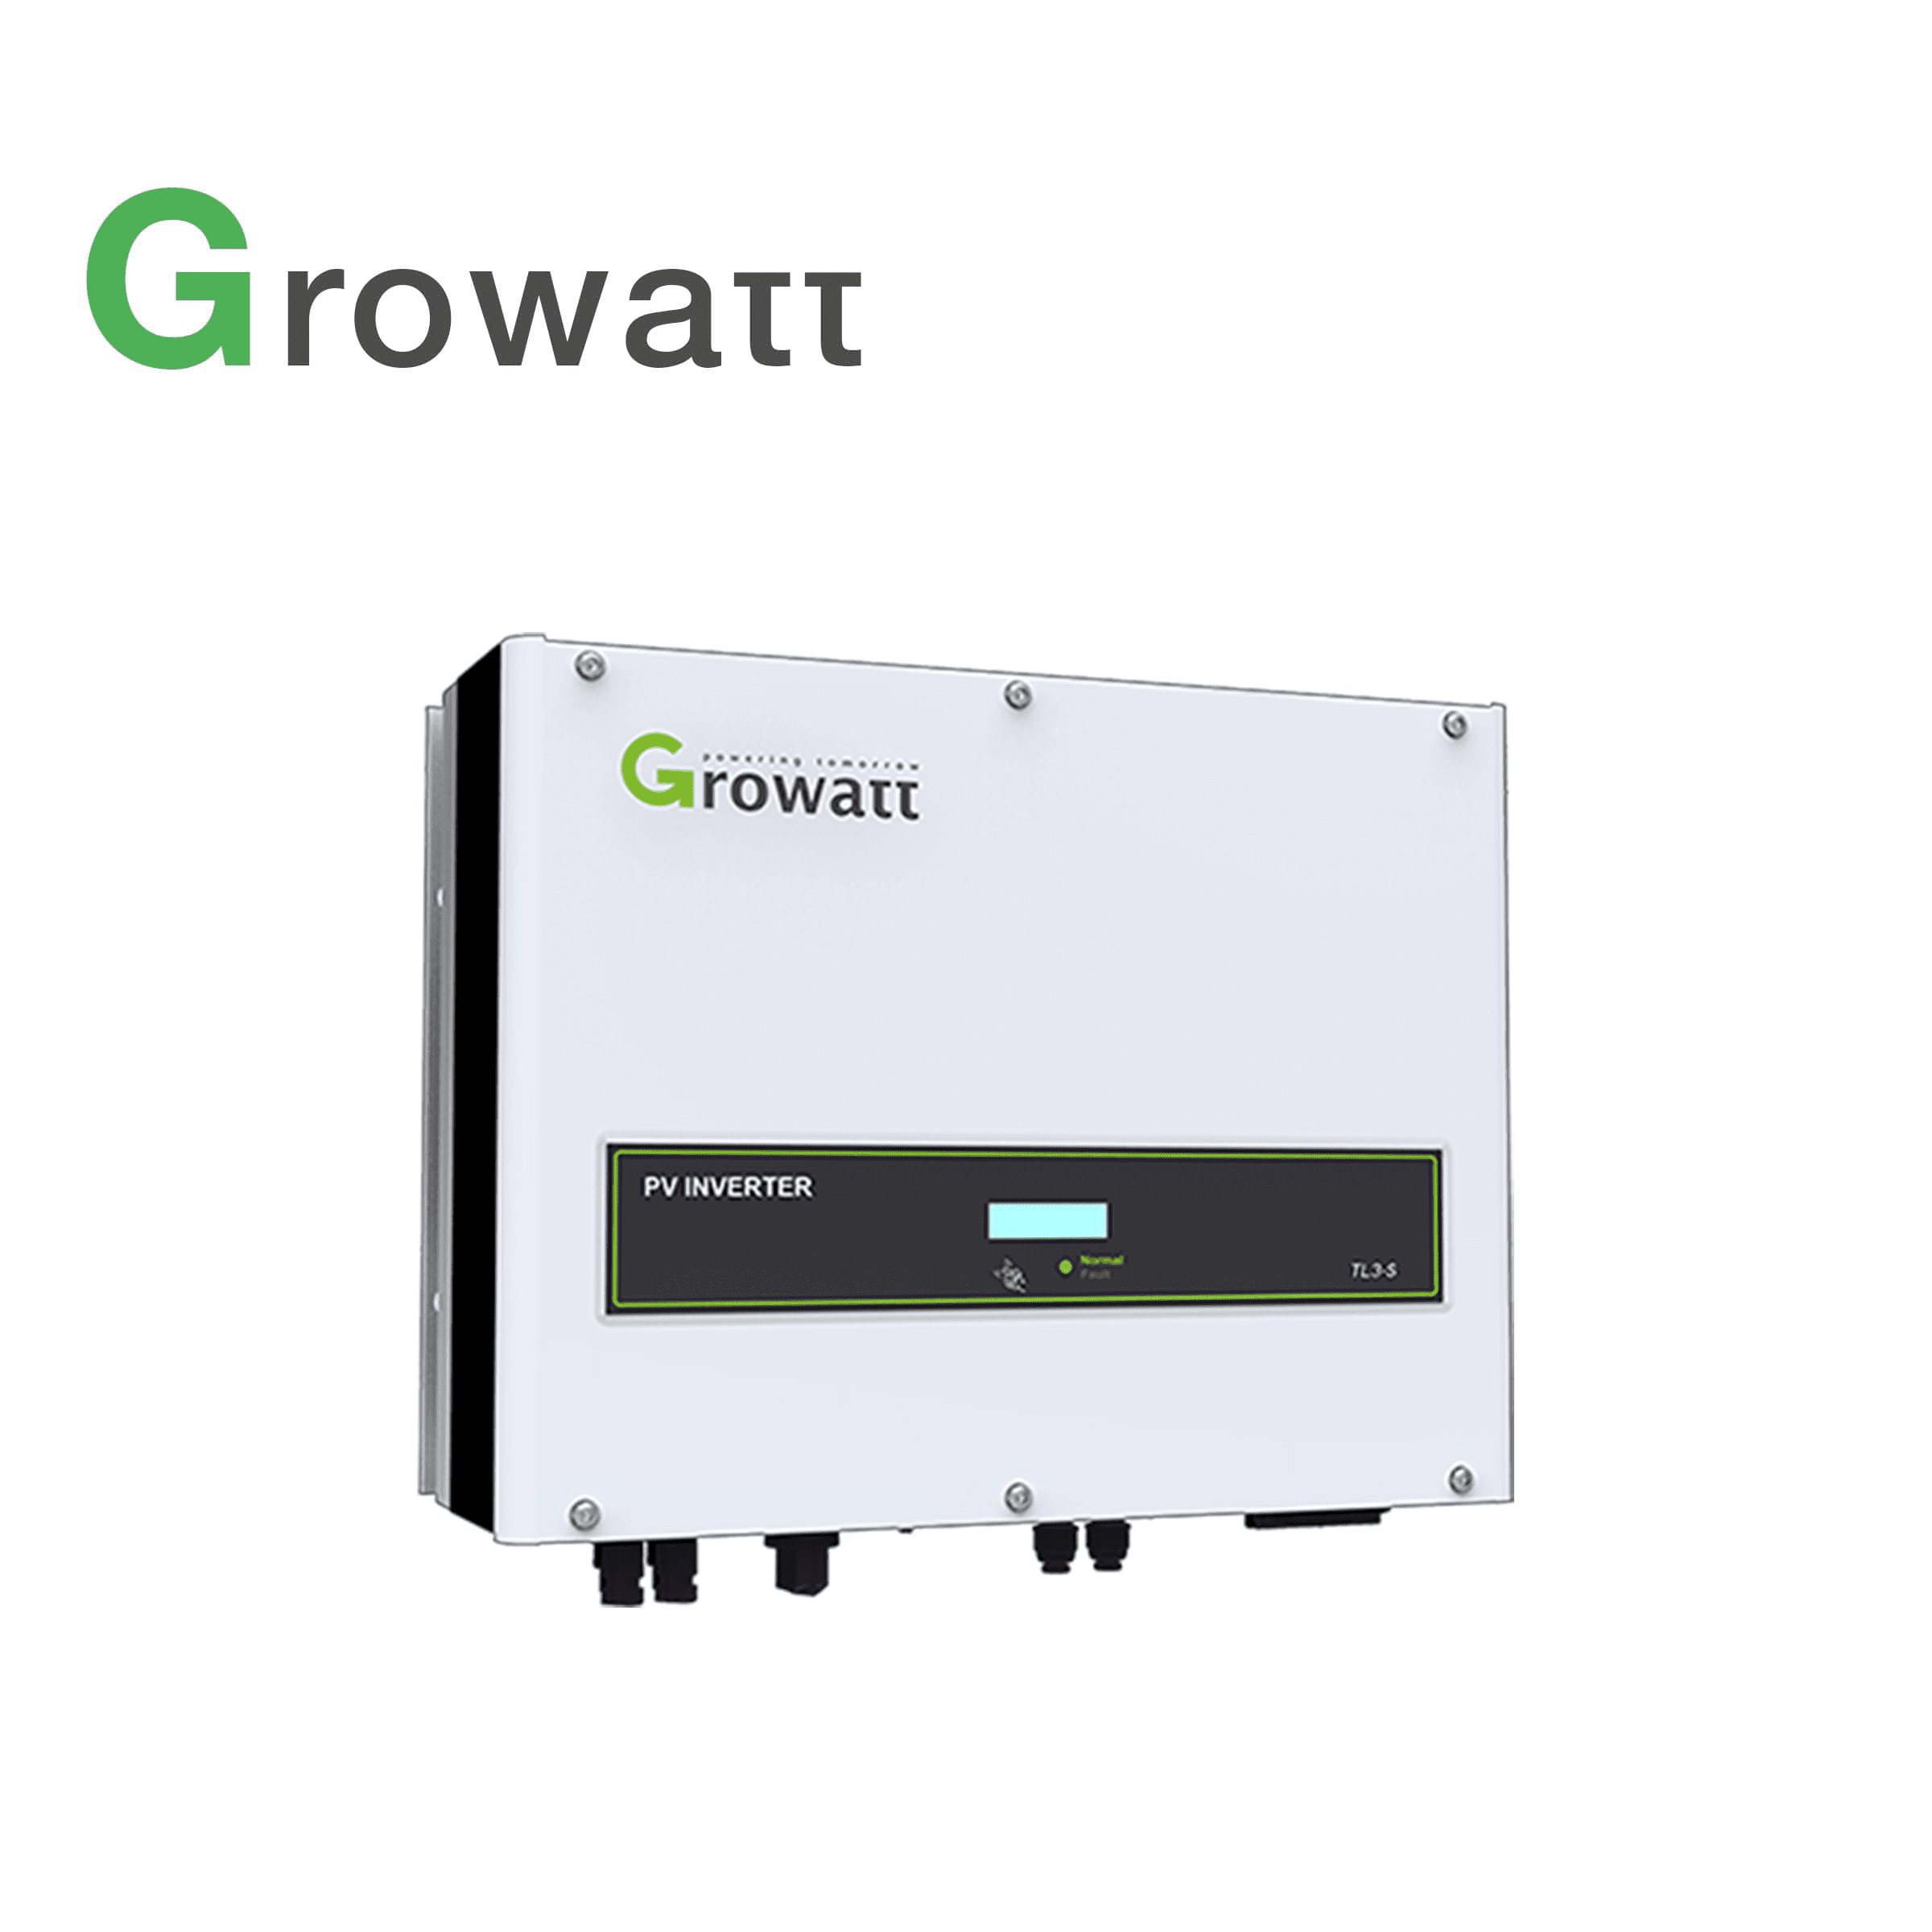 Growatt 10 Kilowatt 3 phase inverter